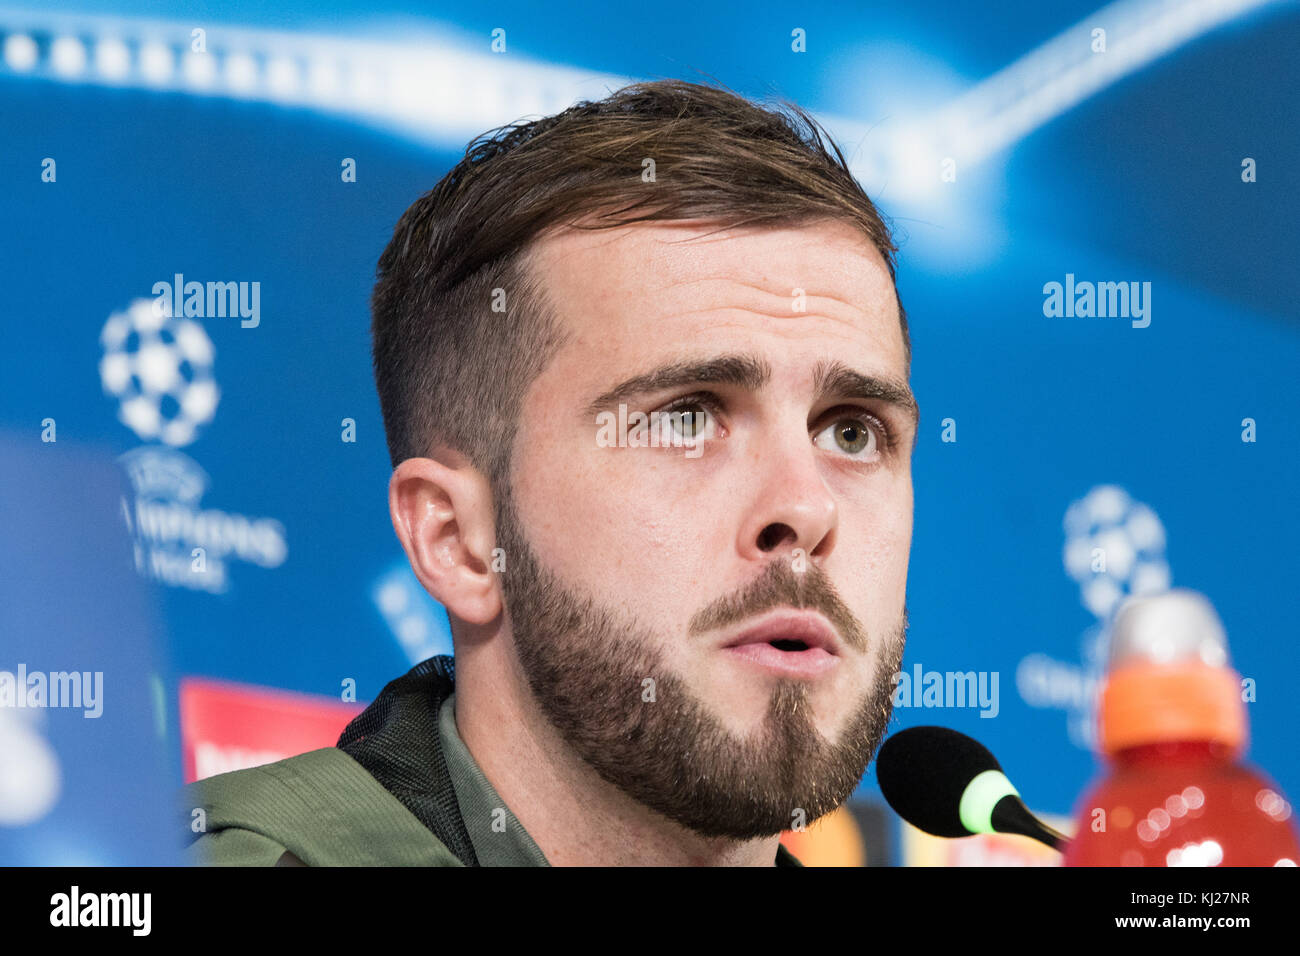 Turin, Italy. 21st Nov, 2017. Miralem Pjanić during the Juventus FC press conference before the Champions League - Stock Image